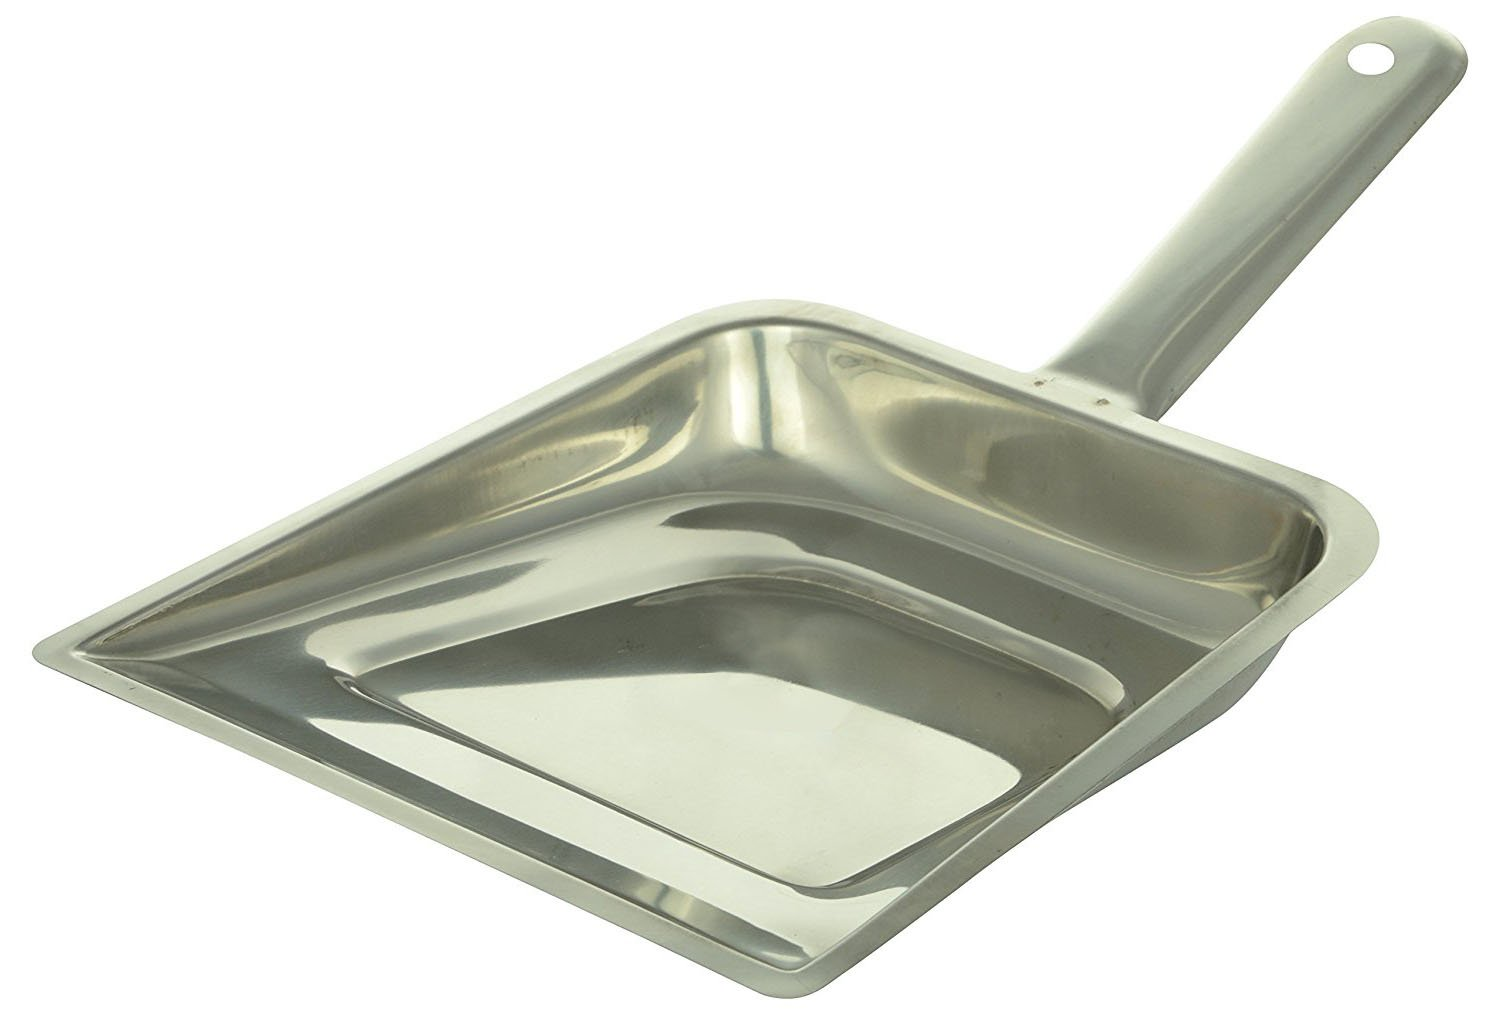 Stainless Steel Dust Pan,Cleaning Product,dust pan cleaner for household floor dust removal. by Satre Online And Marketing (Image #2)